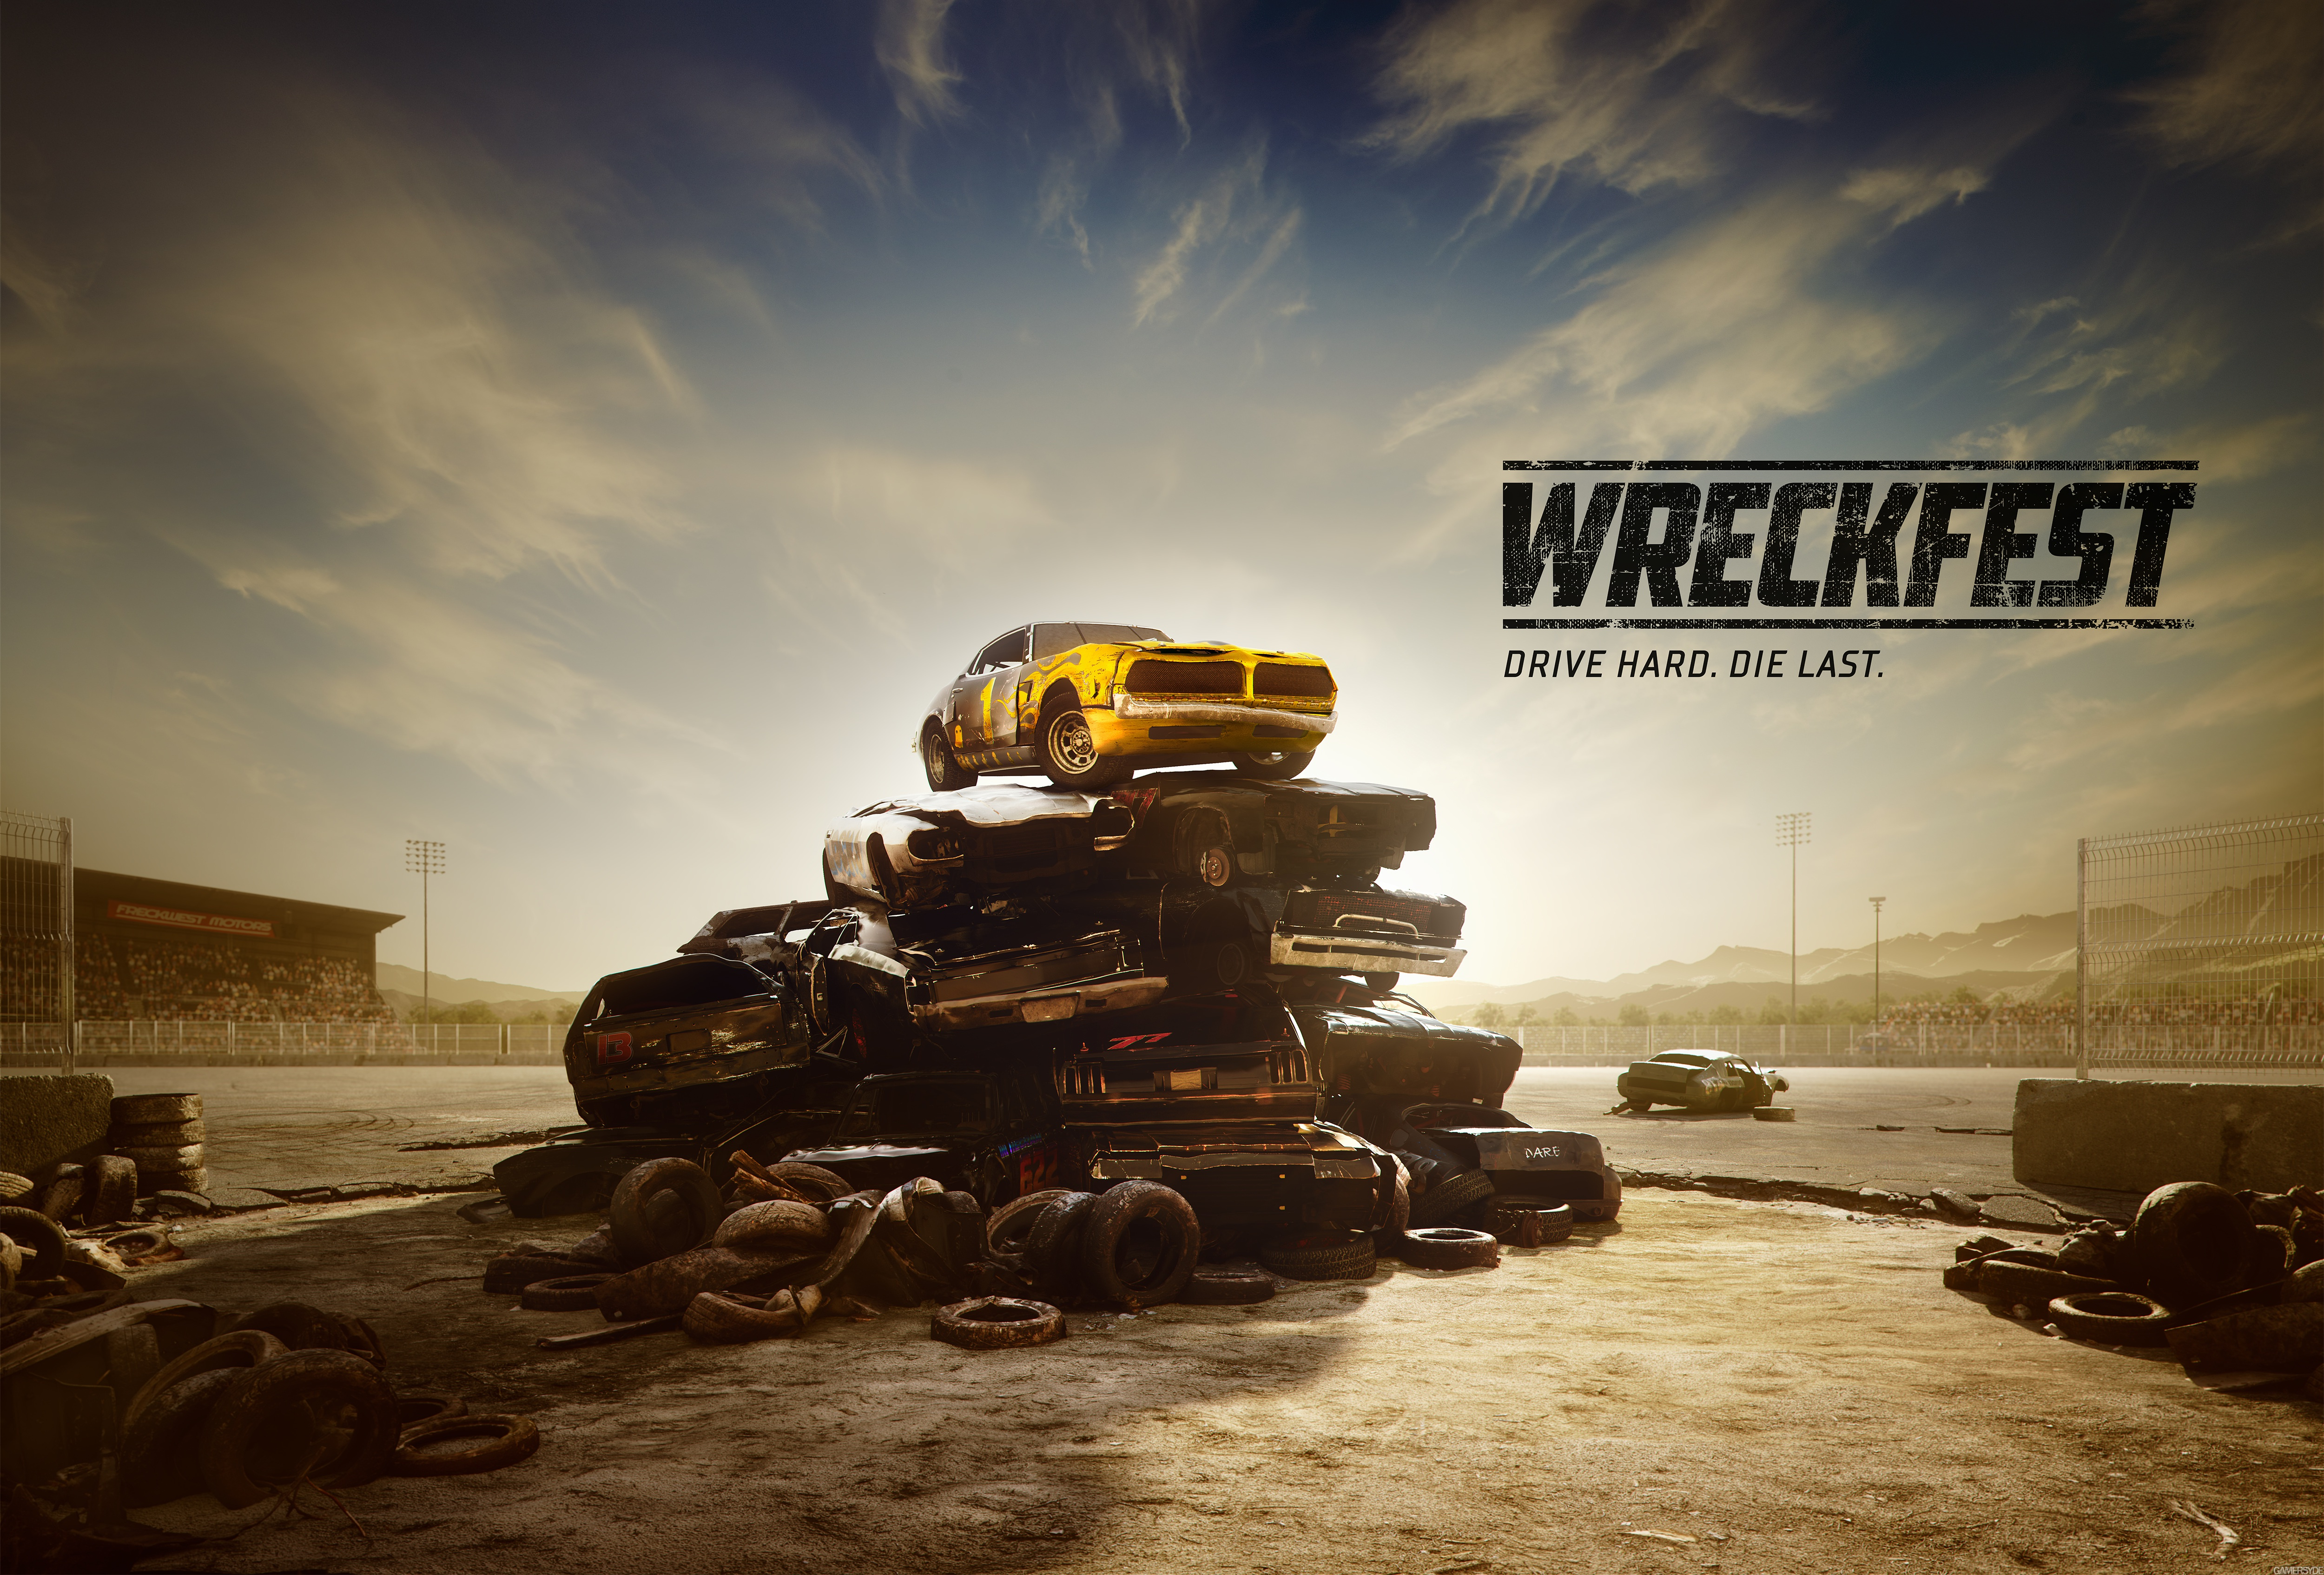 2018 (year) video games wreck car vehicle